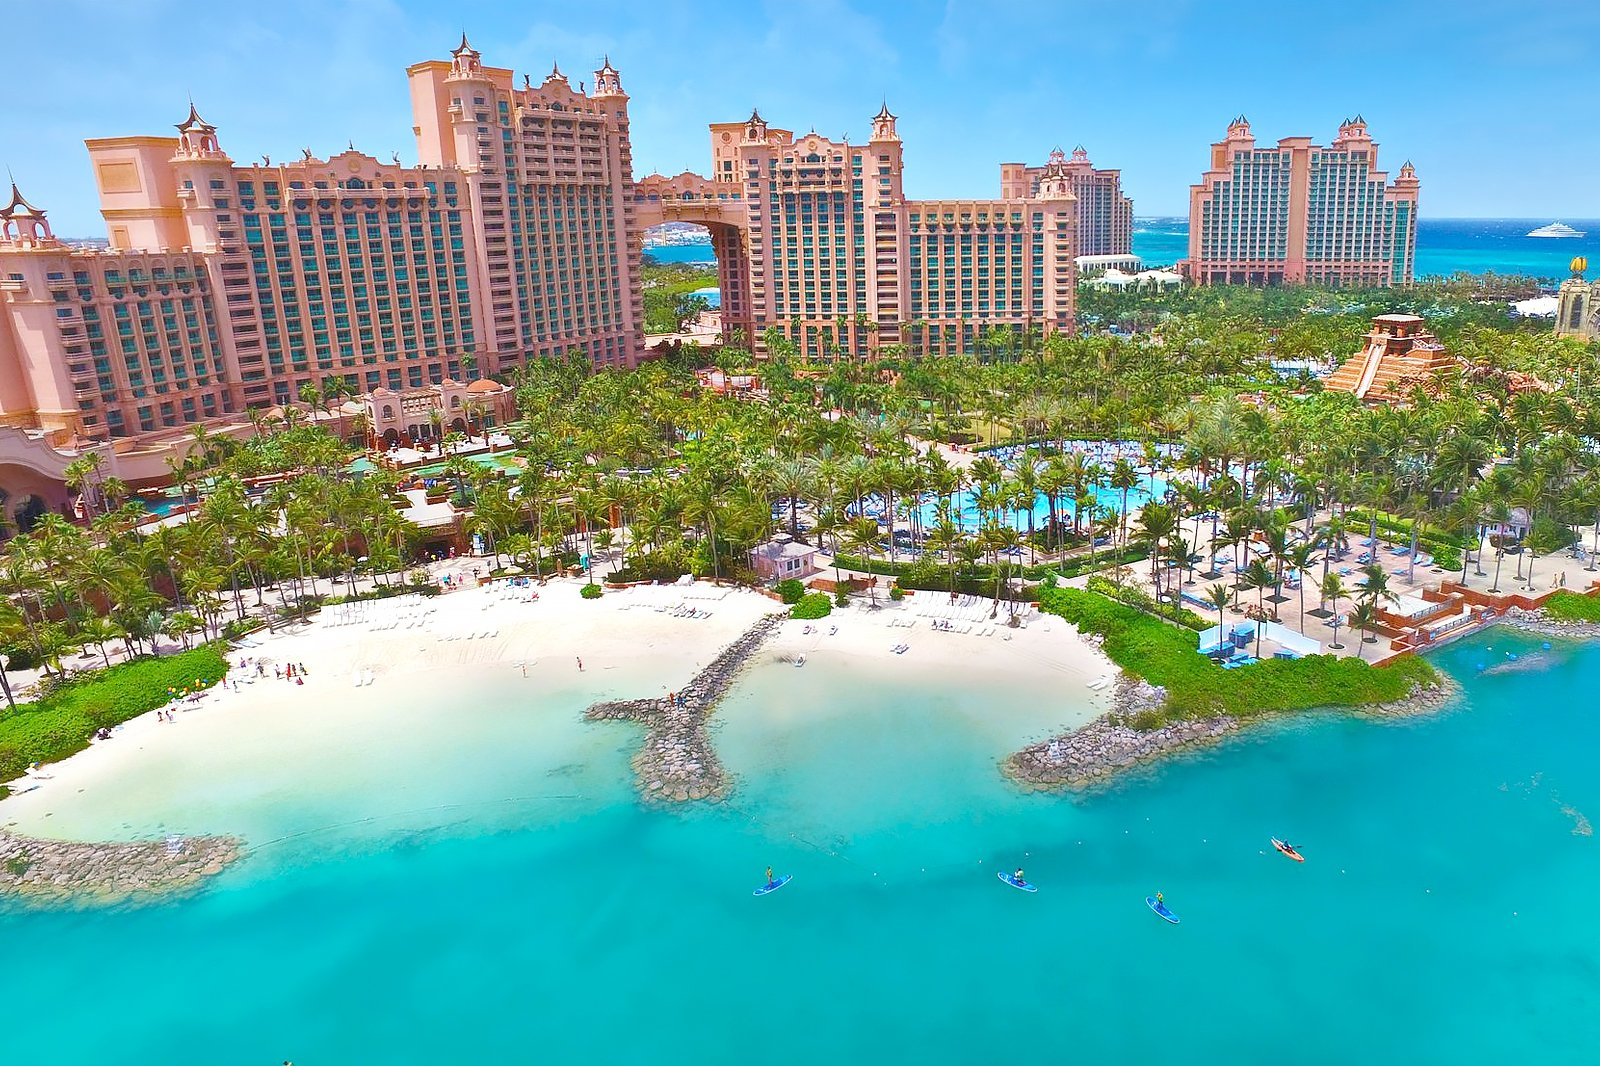 10 Things to Do in The Bahamas - What is The Bahamas Most Famous For?